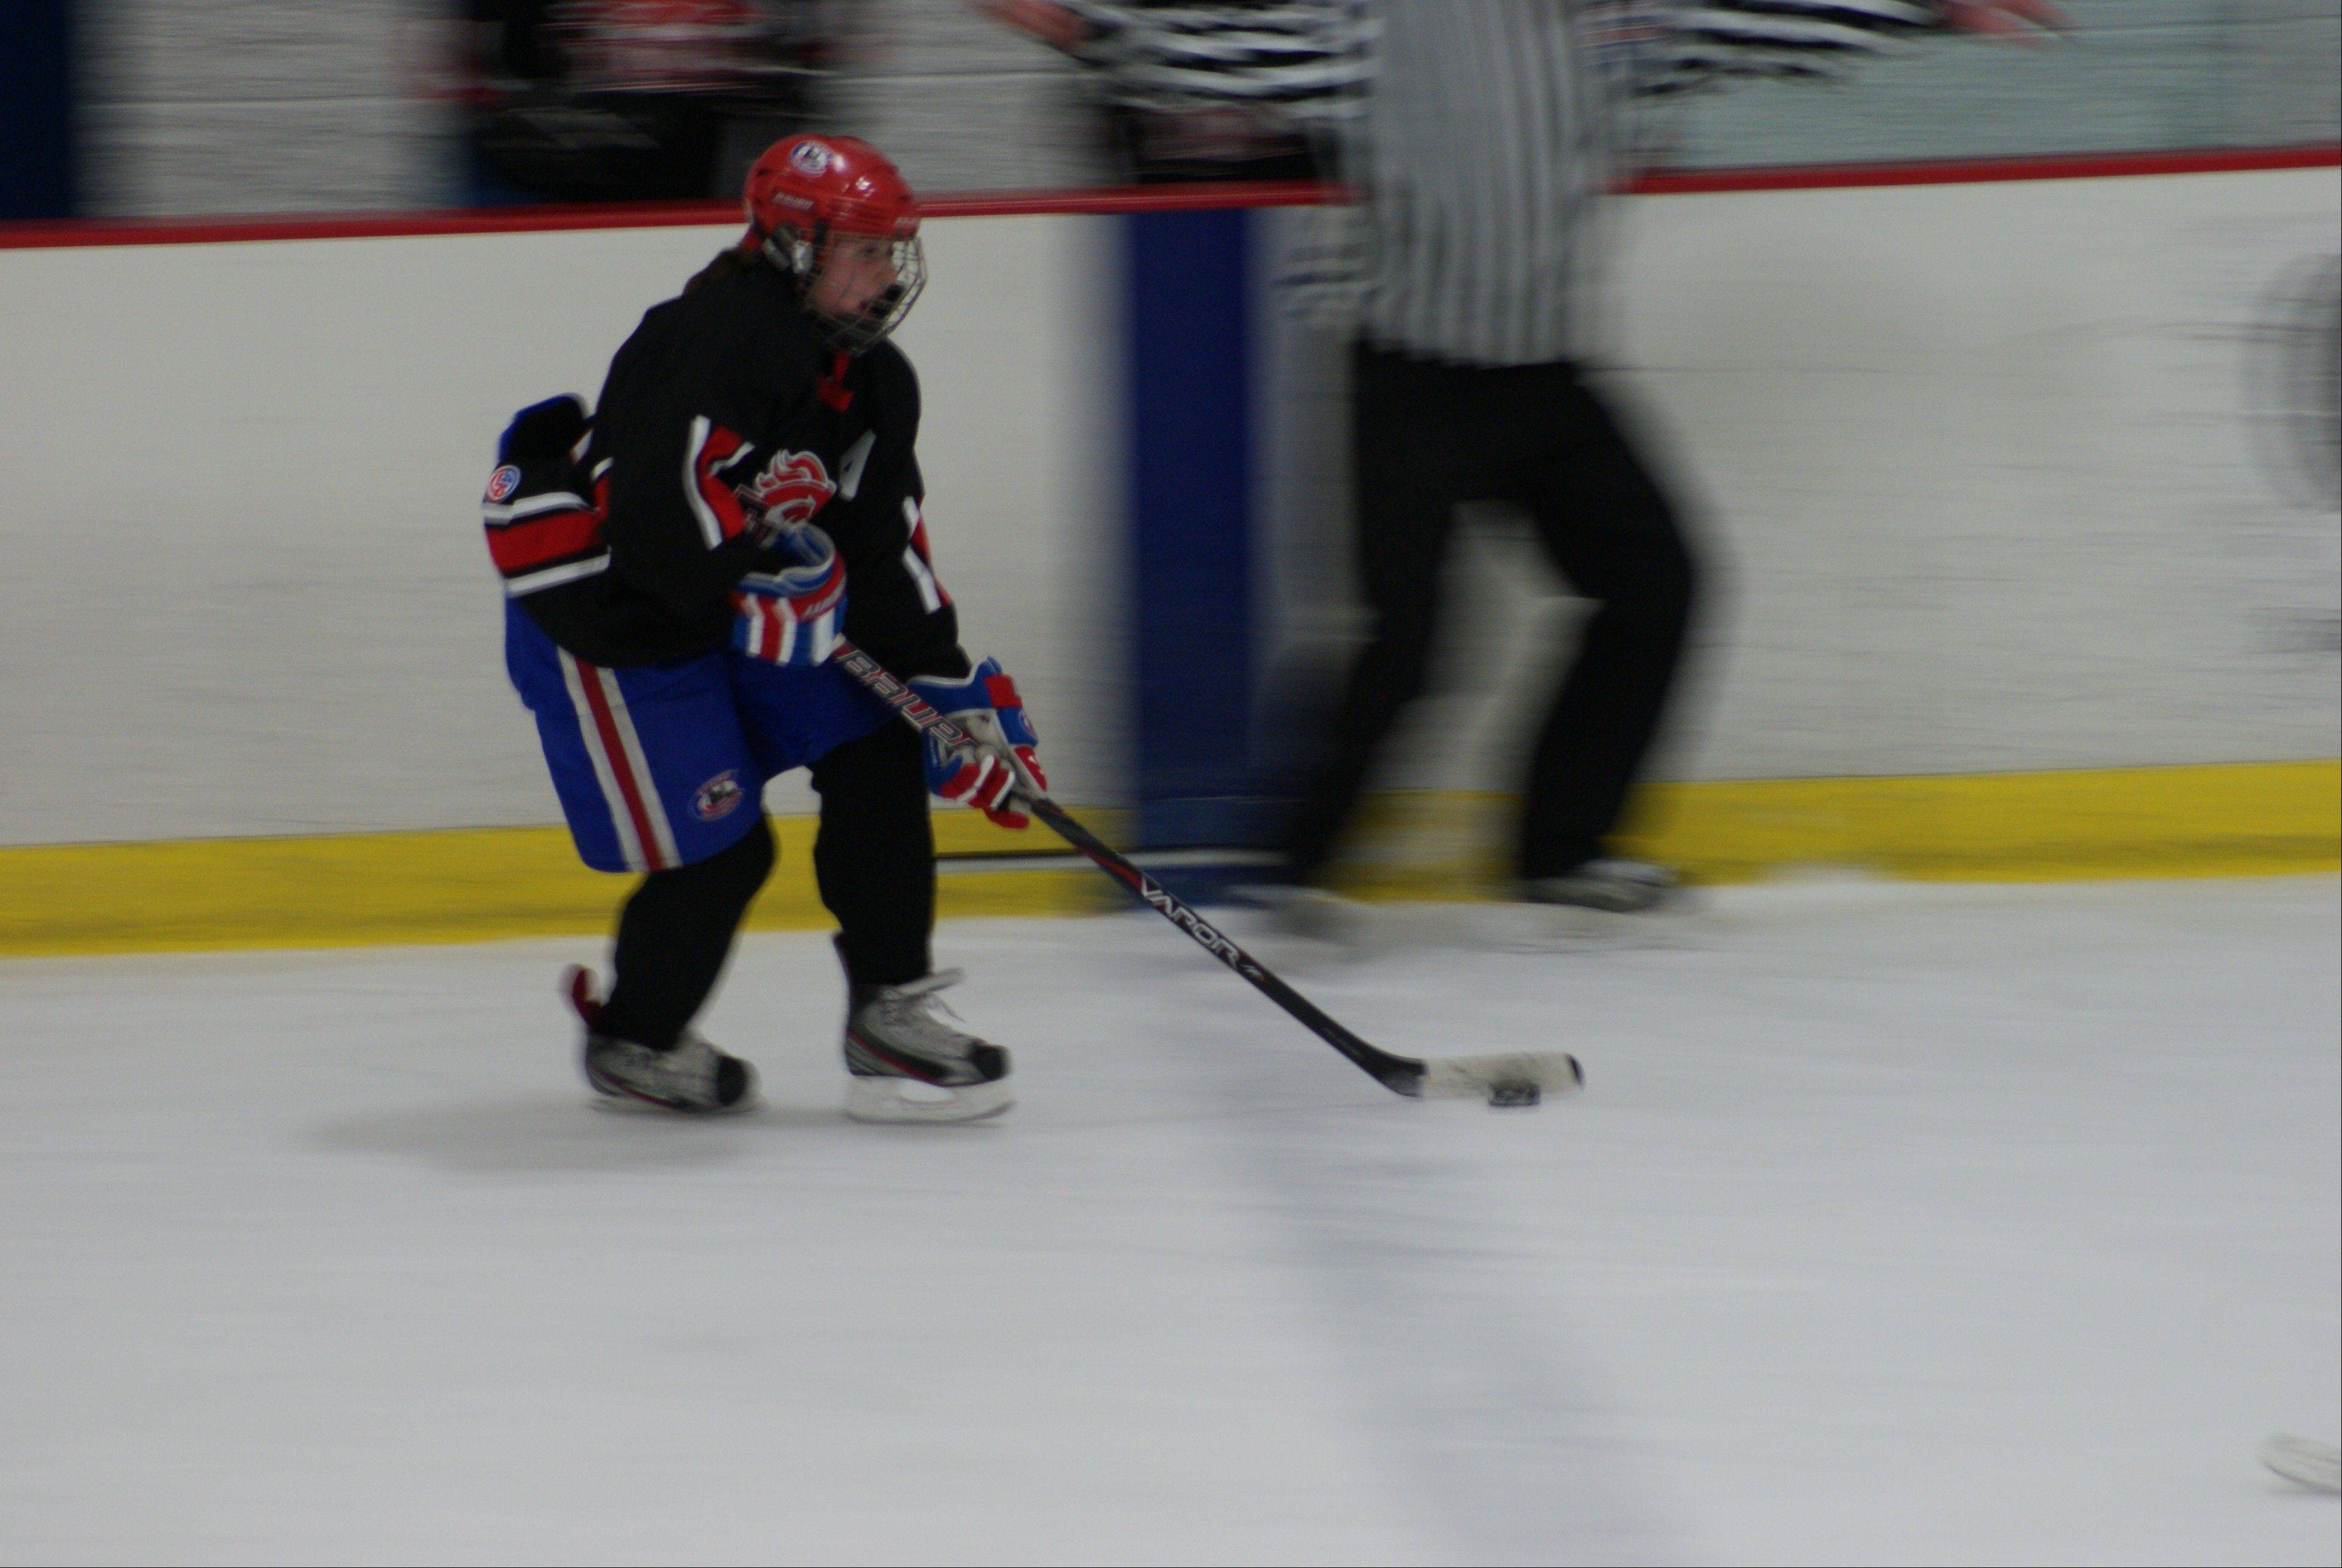 Andrea Renner is keeping her hockey season alive with the Chicago Young Americans after a successful high school season with the co-op Barrington Fillies.